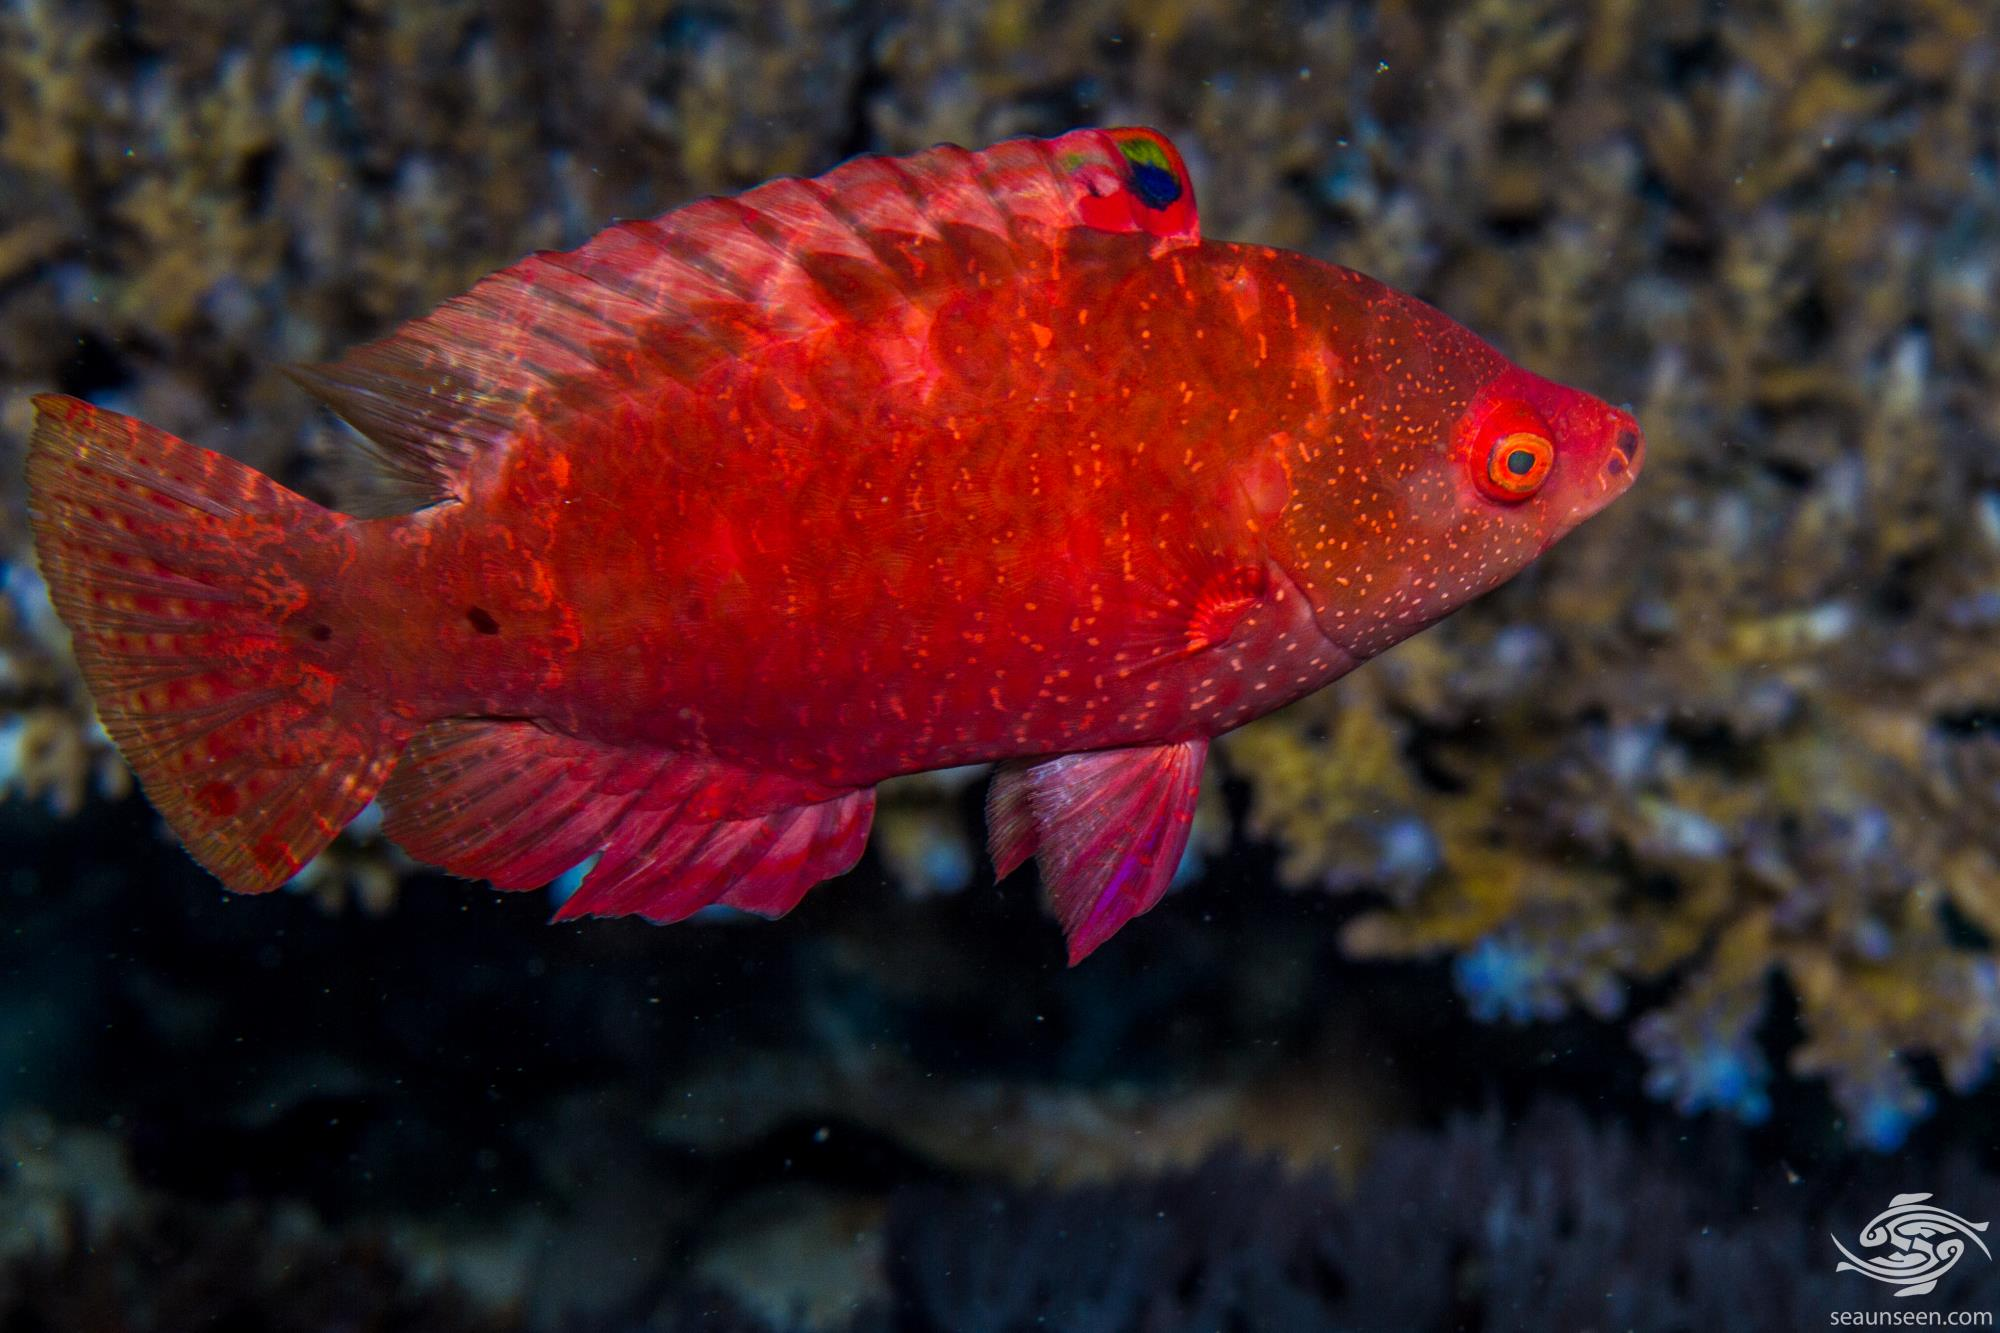 Snooty wrasse (Cheilinus oxycephalus) is also known as the Snooty Maori wrasse, Pointed-head wrasse, Point-head Maori wrasse, Red Maori wrasse